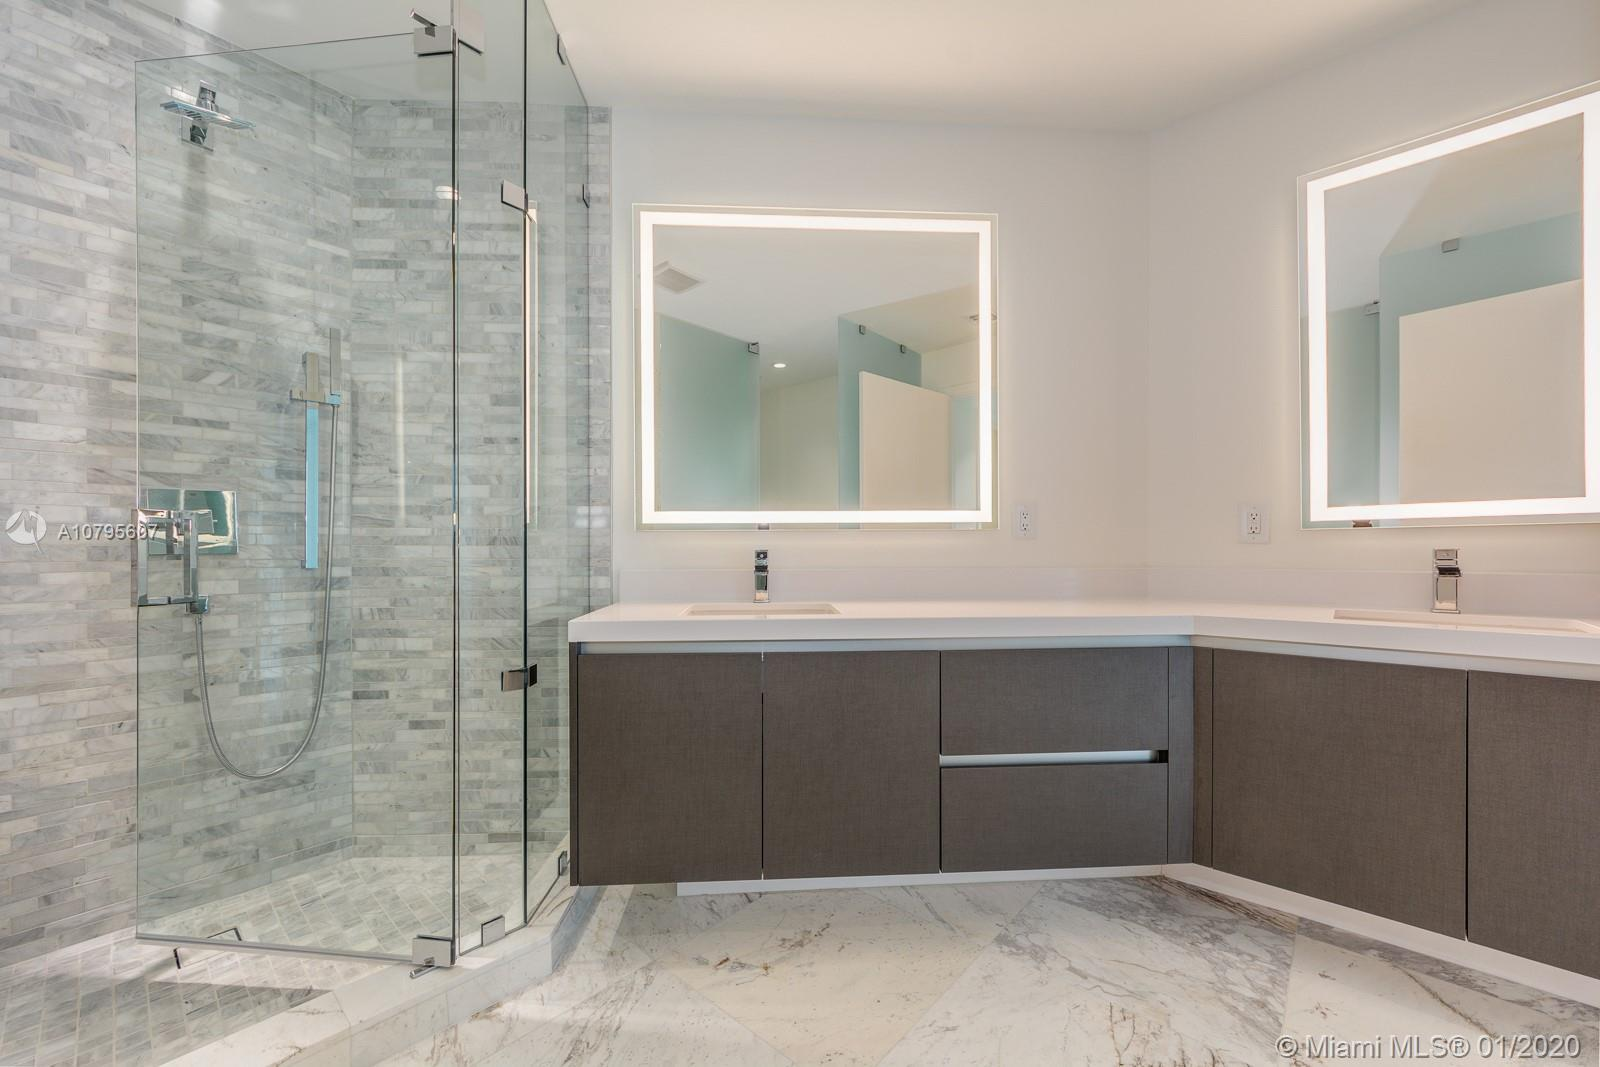 Luxury residence 2 beds + den/3 baths at Paramount Miami Worldcenter offering the Most Amenities in